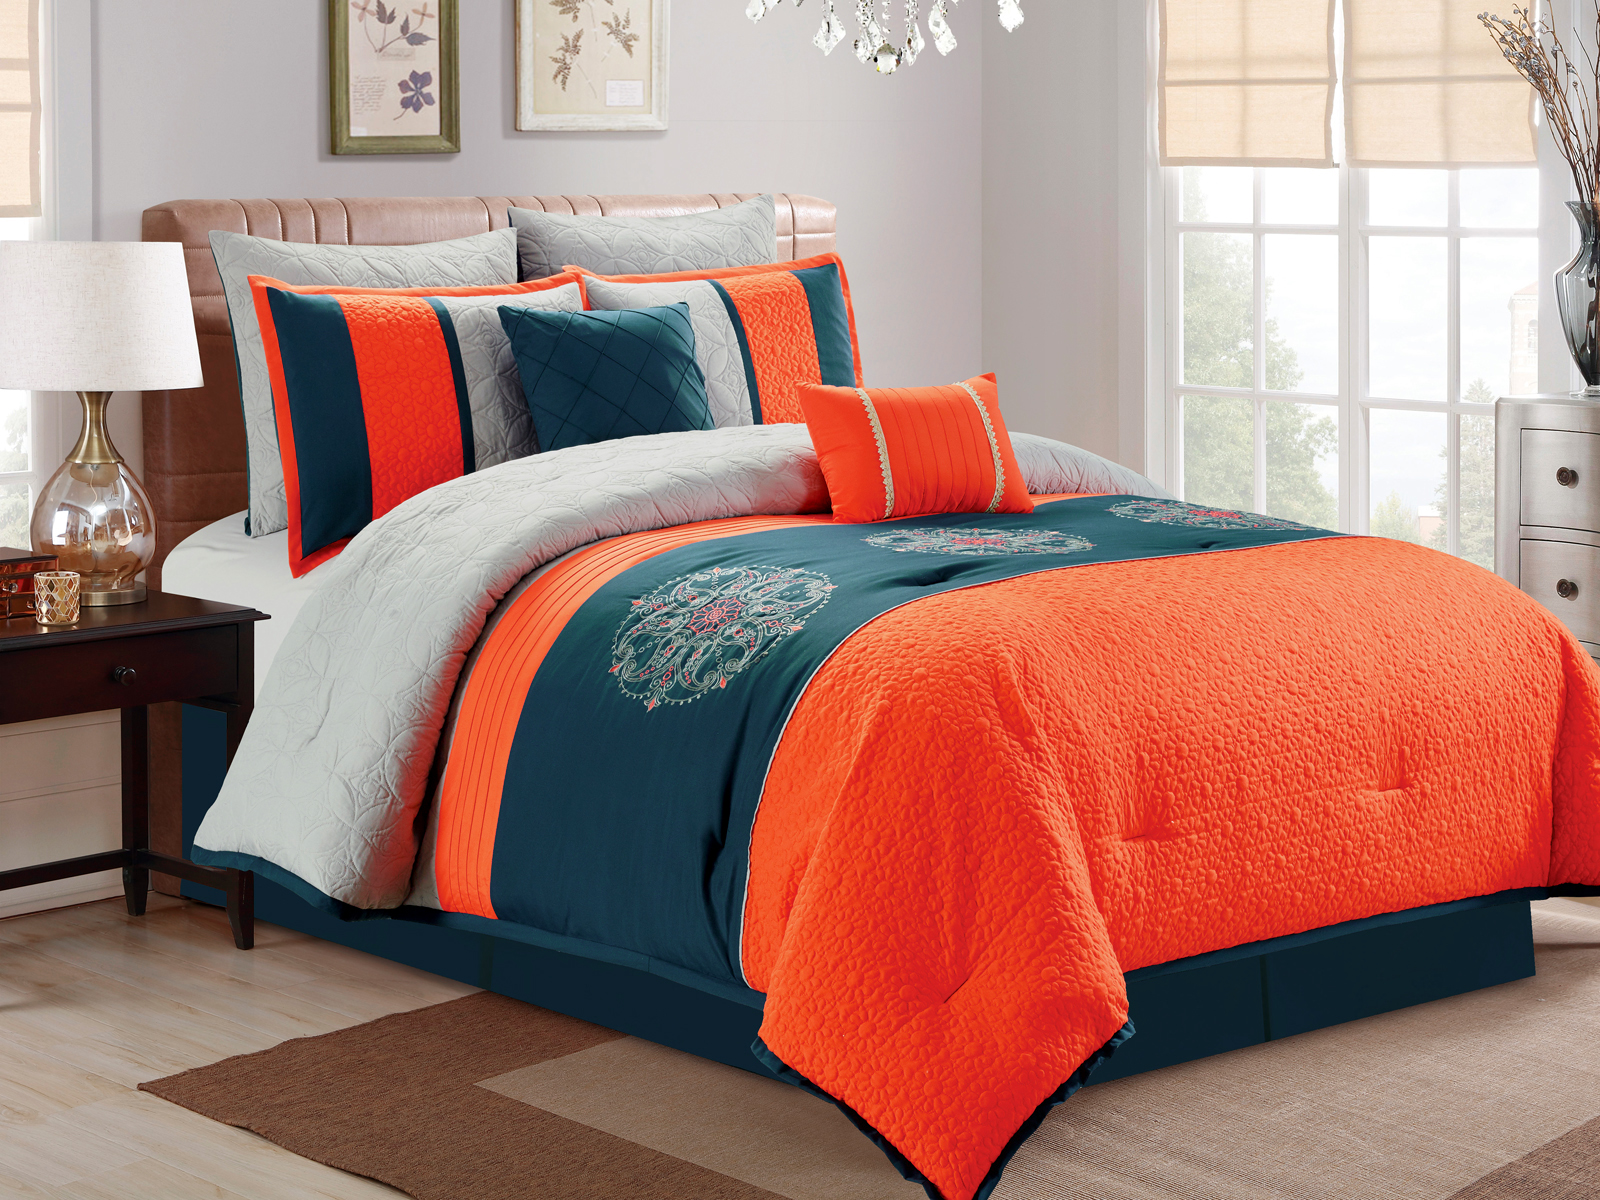 11p Paisley Medallion Embroidery Quilted Comforter Curtain Set Orange Blue Queen Ebay